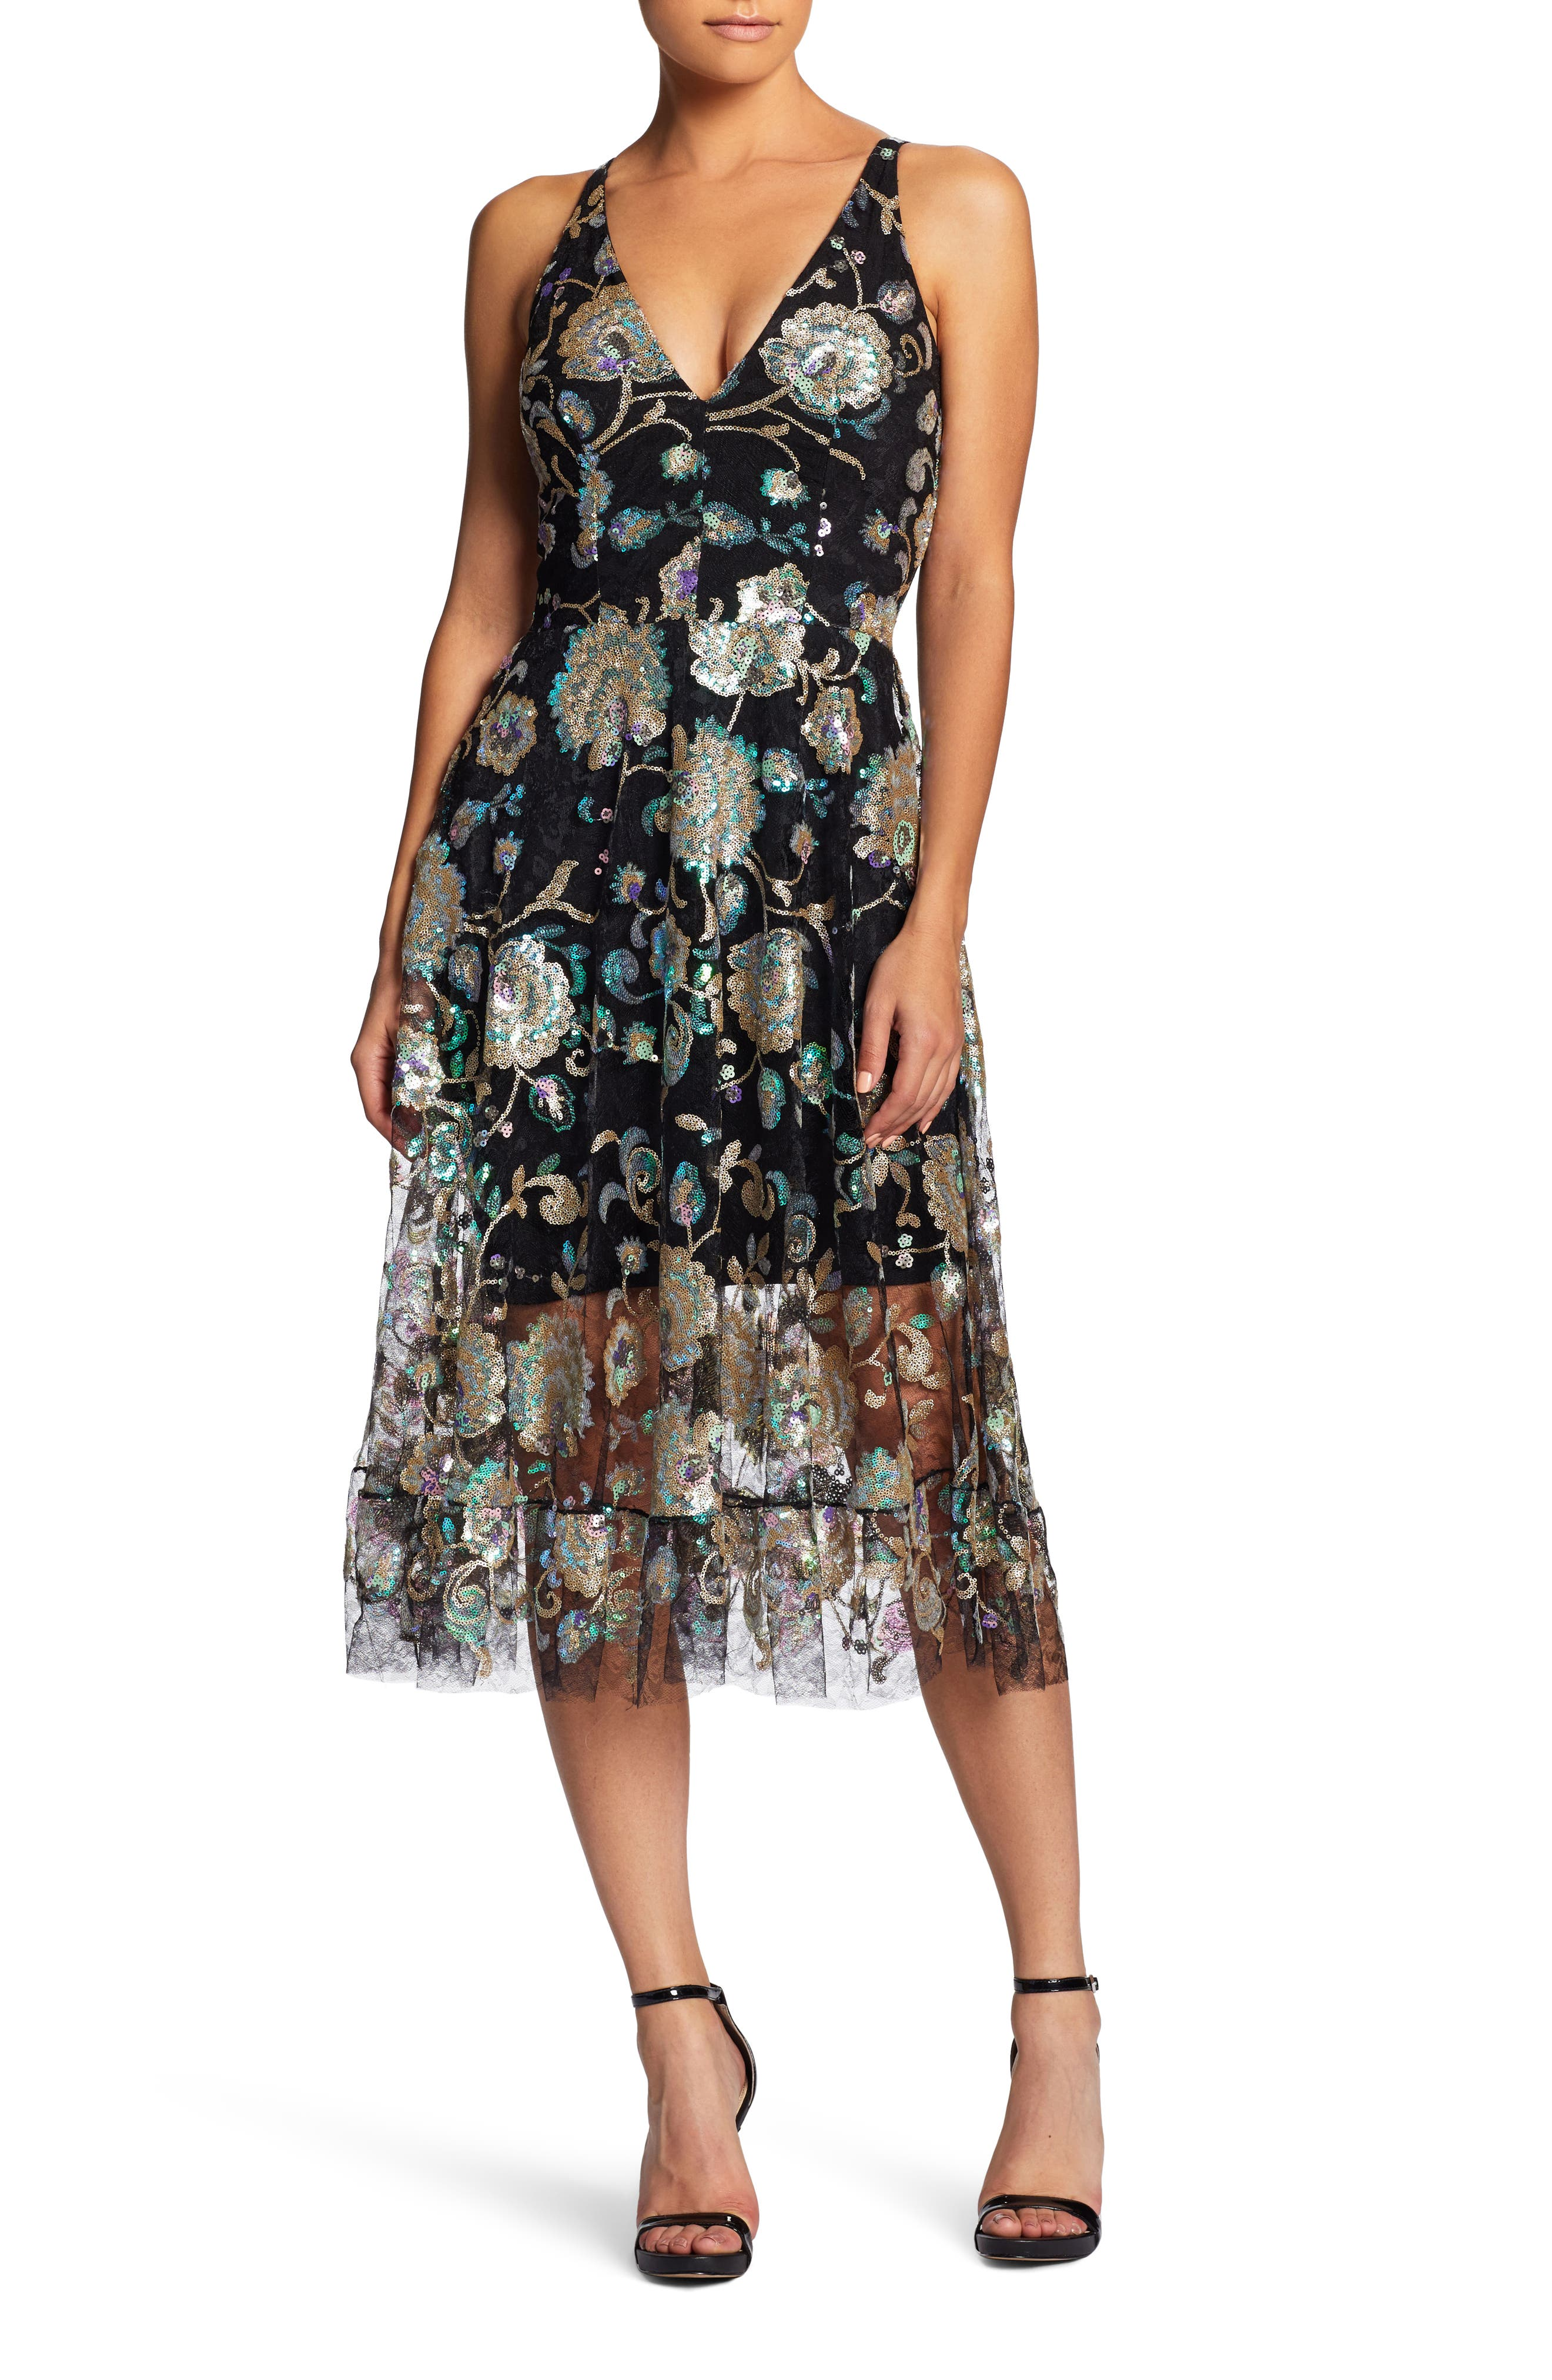 Audrey Sequin Embroidered Midi Dress,                             Main thumbnail 1, color,                             Black/ Iridescent Floral